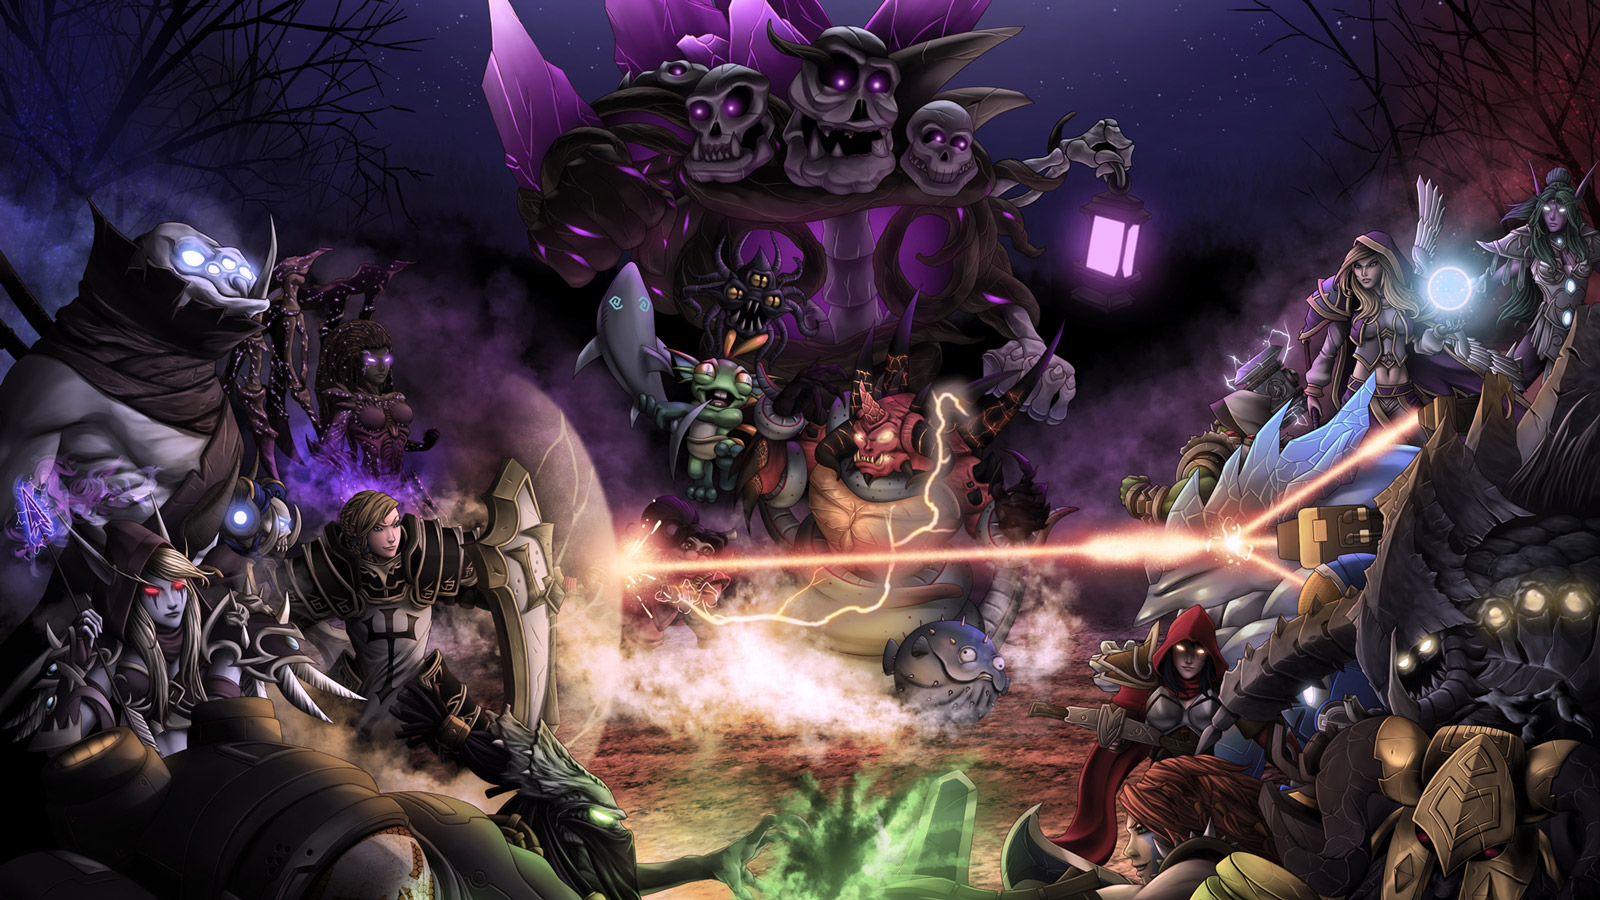 Free Heroes of the Storm Wallpaper in 1600x900